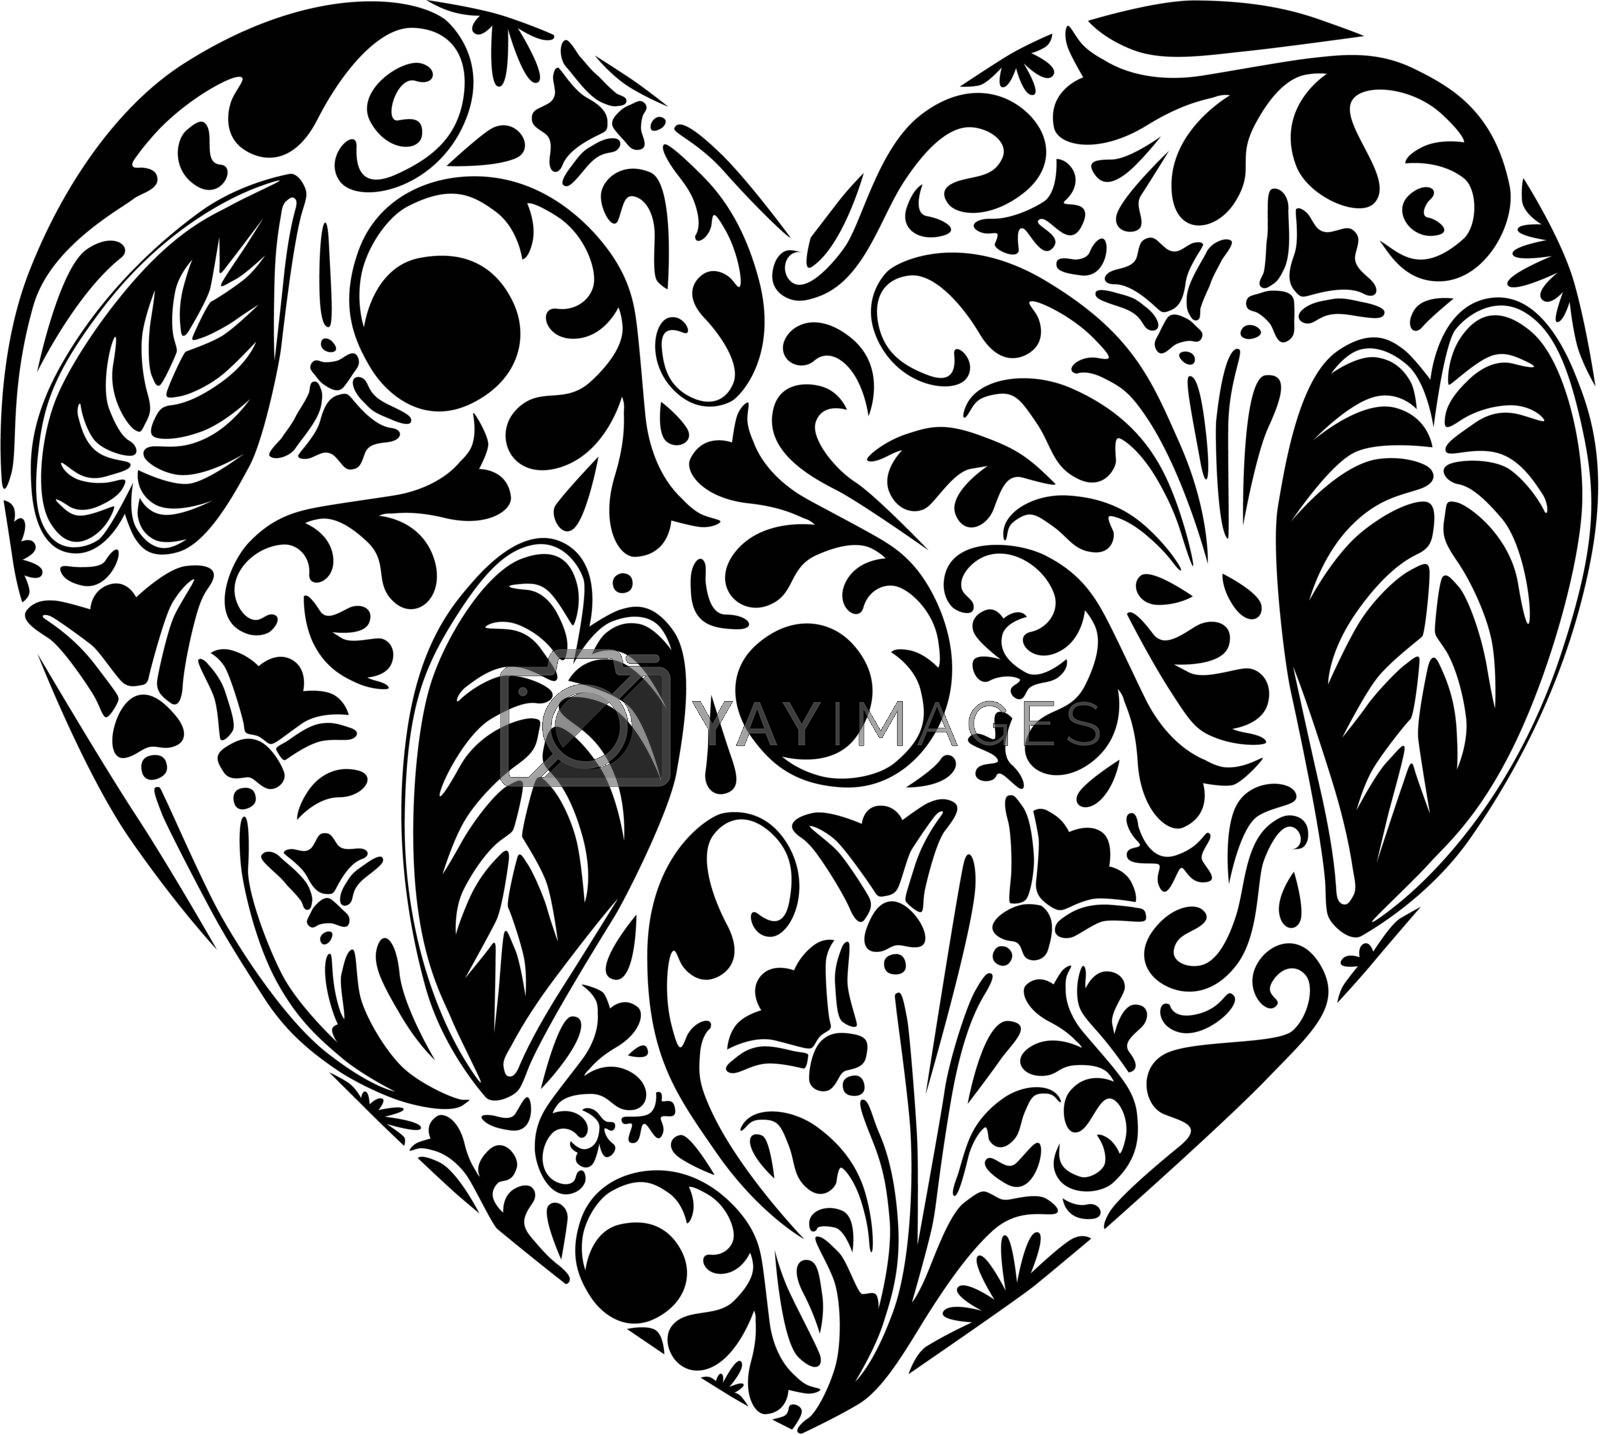 Heart made of floral elements